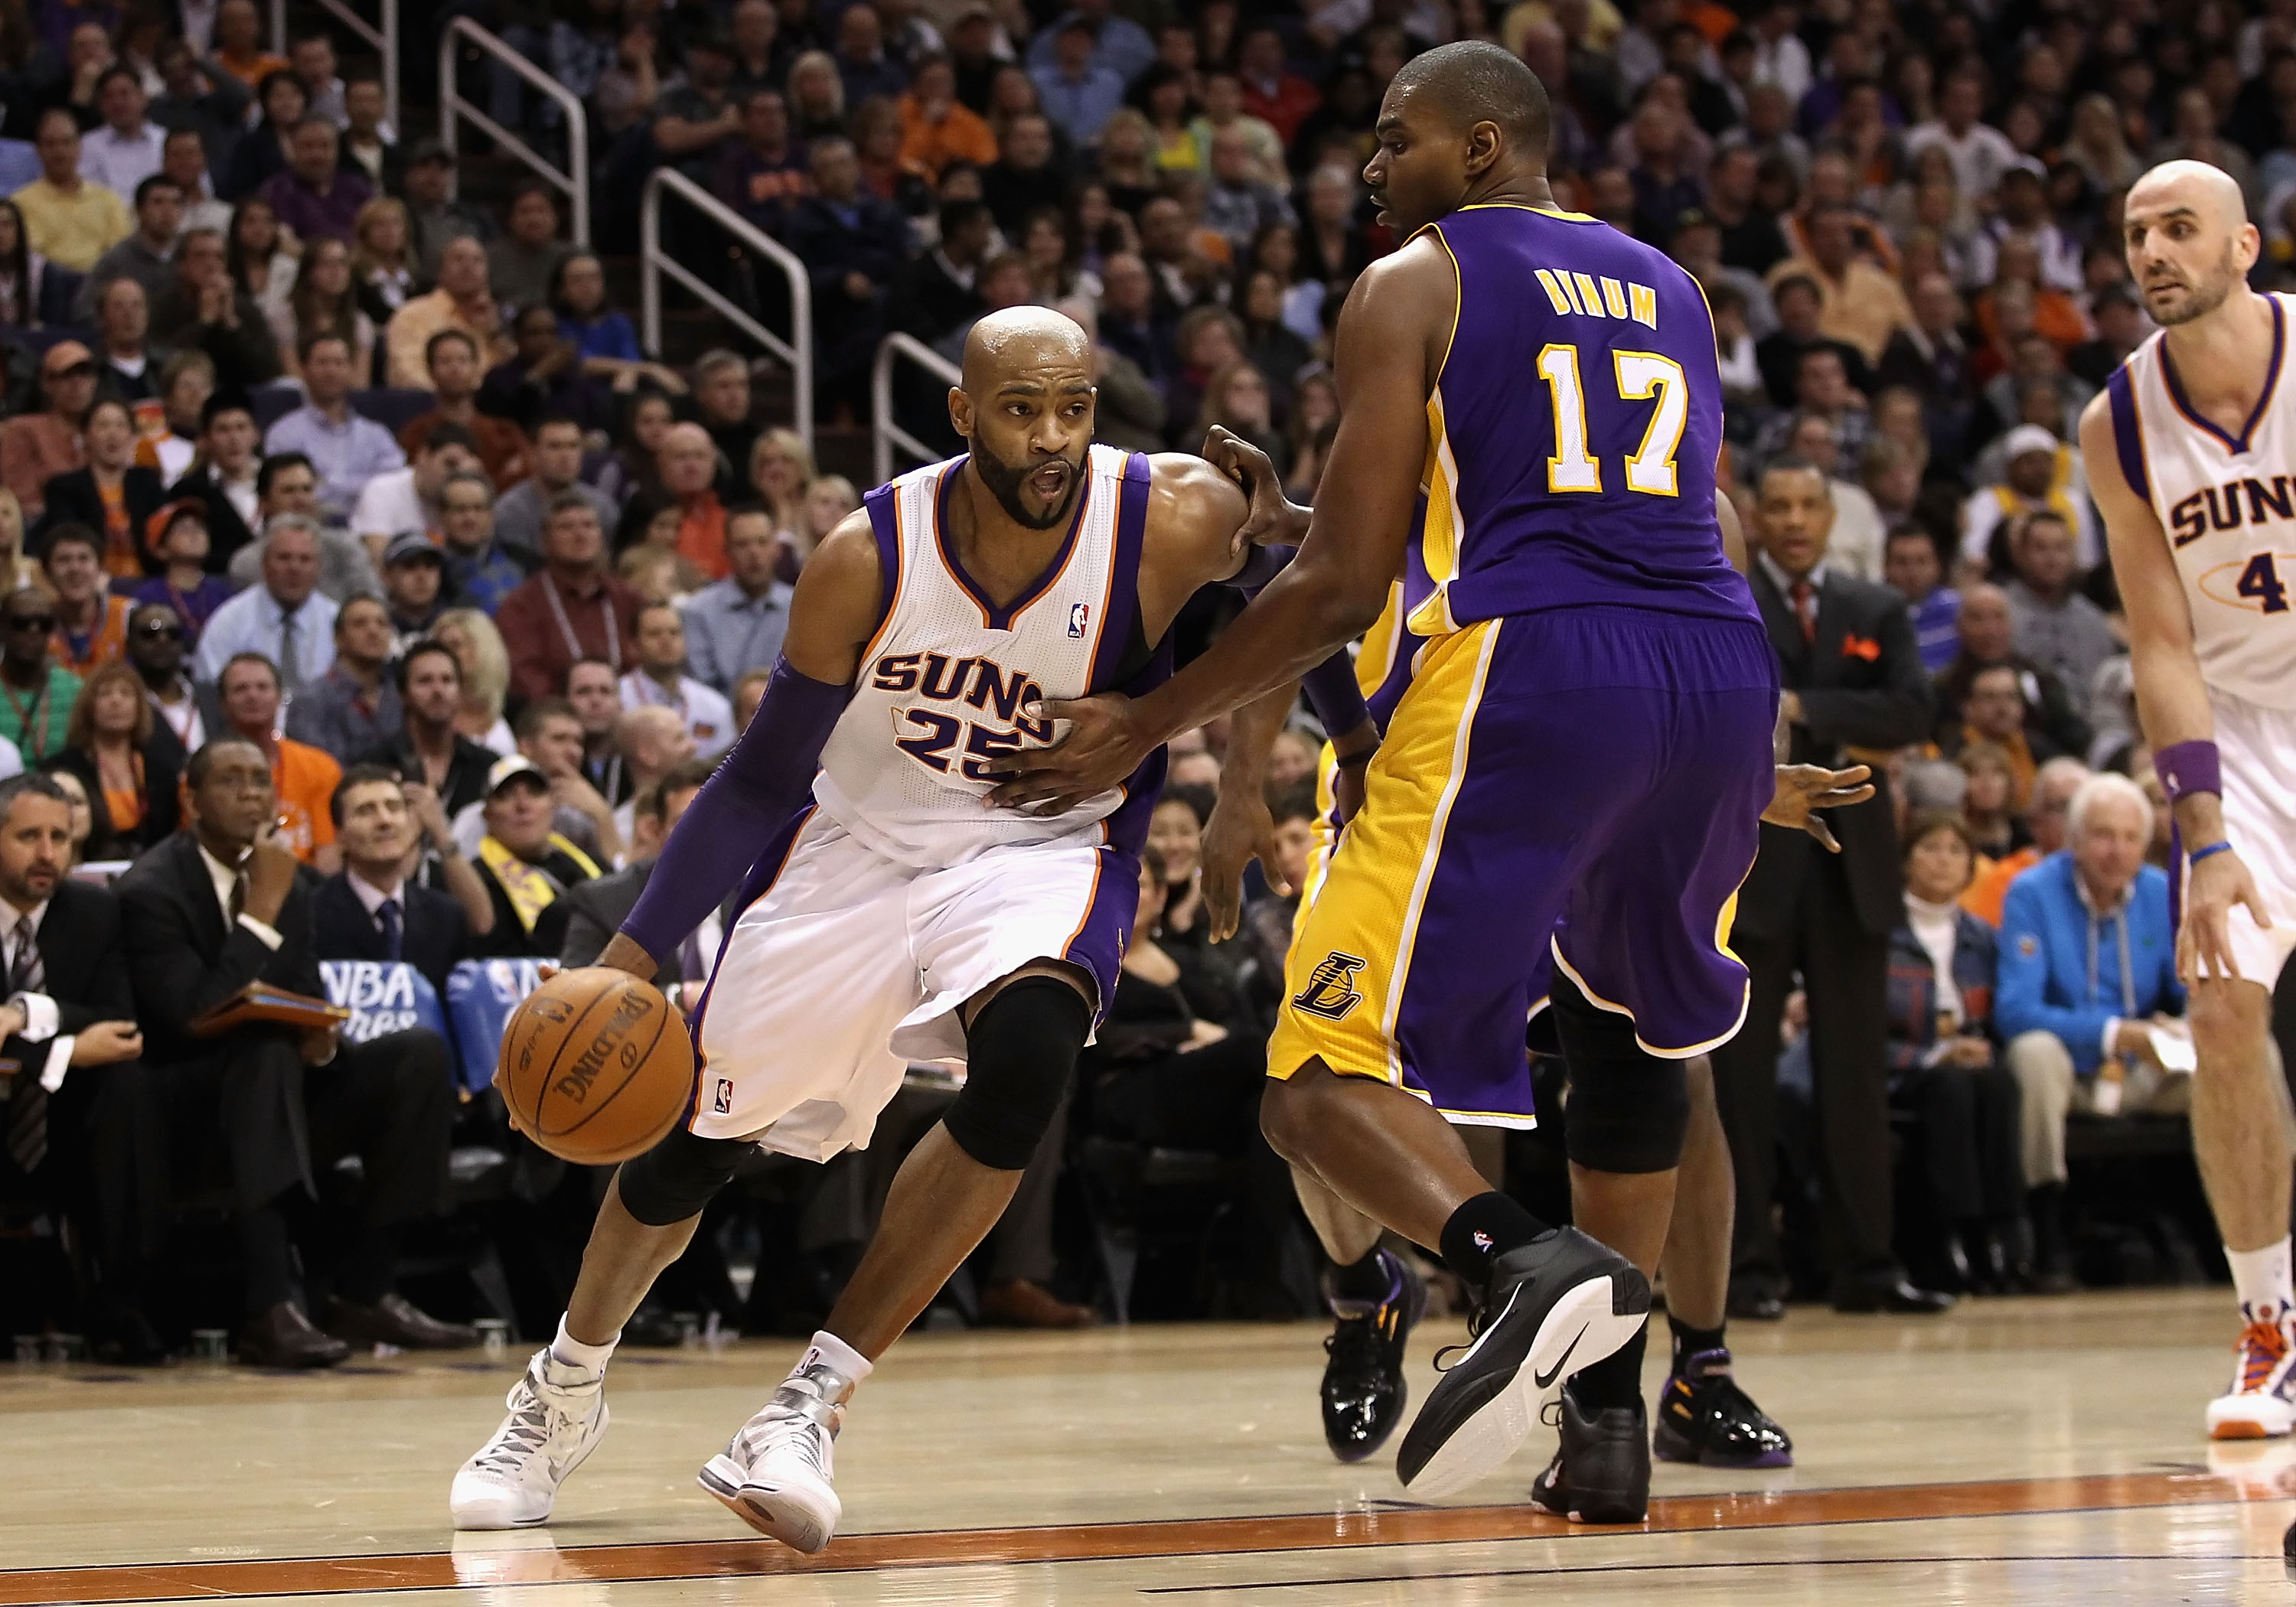 PHOENIX, AZ - JANUARY 05:   Vince Carter #25 of the Phoenix Suns drives the ball against the Los Angeles Lakers during the NBA game at US Airways Center on January 5, 2011 in Phoenix, Arizona. The Lakers defeated the Suns 99-95.  NOTE TO USER: User expres